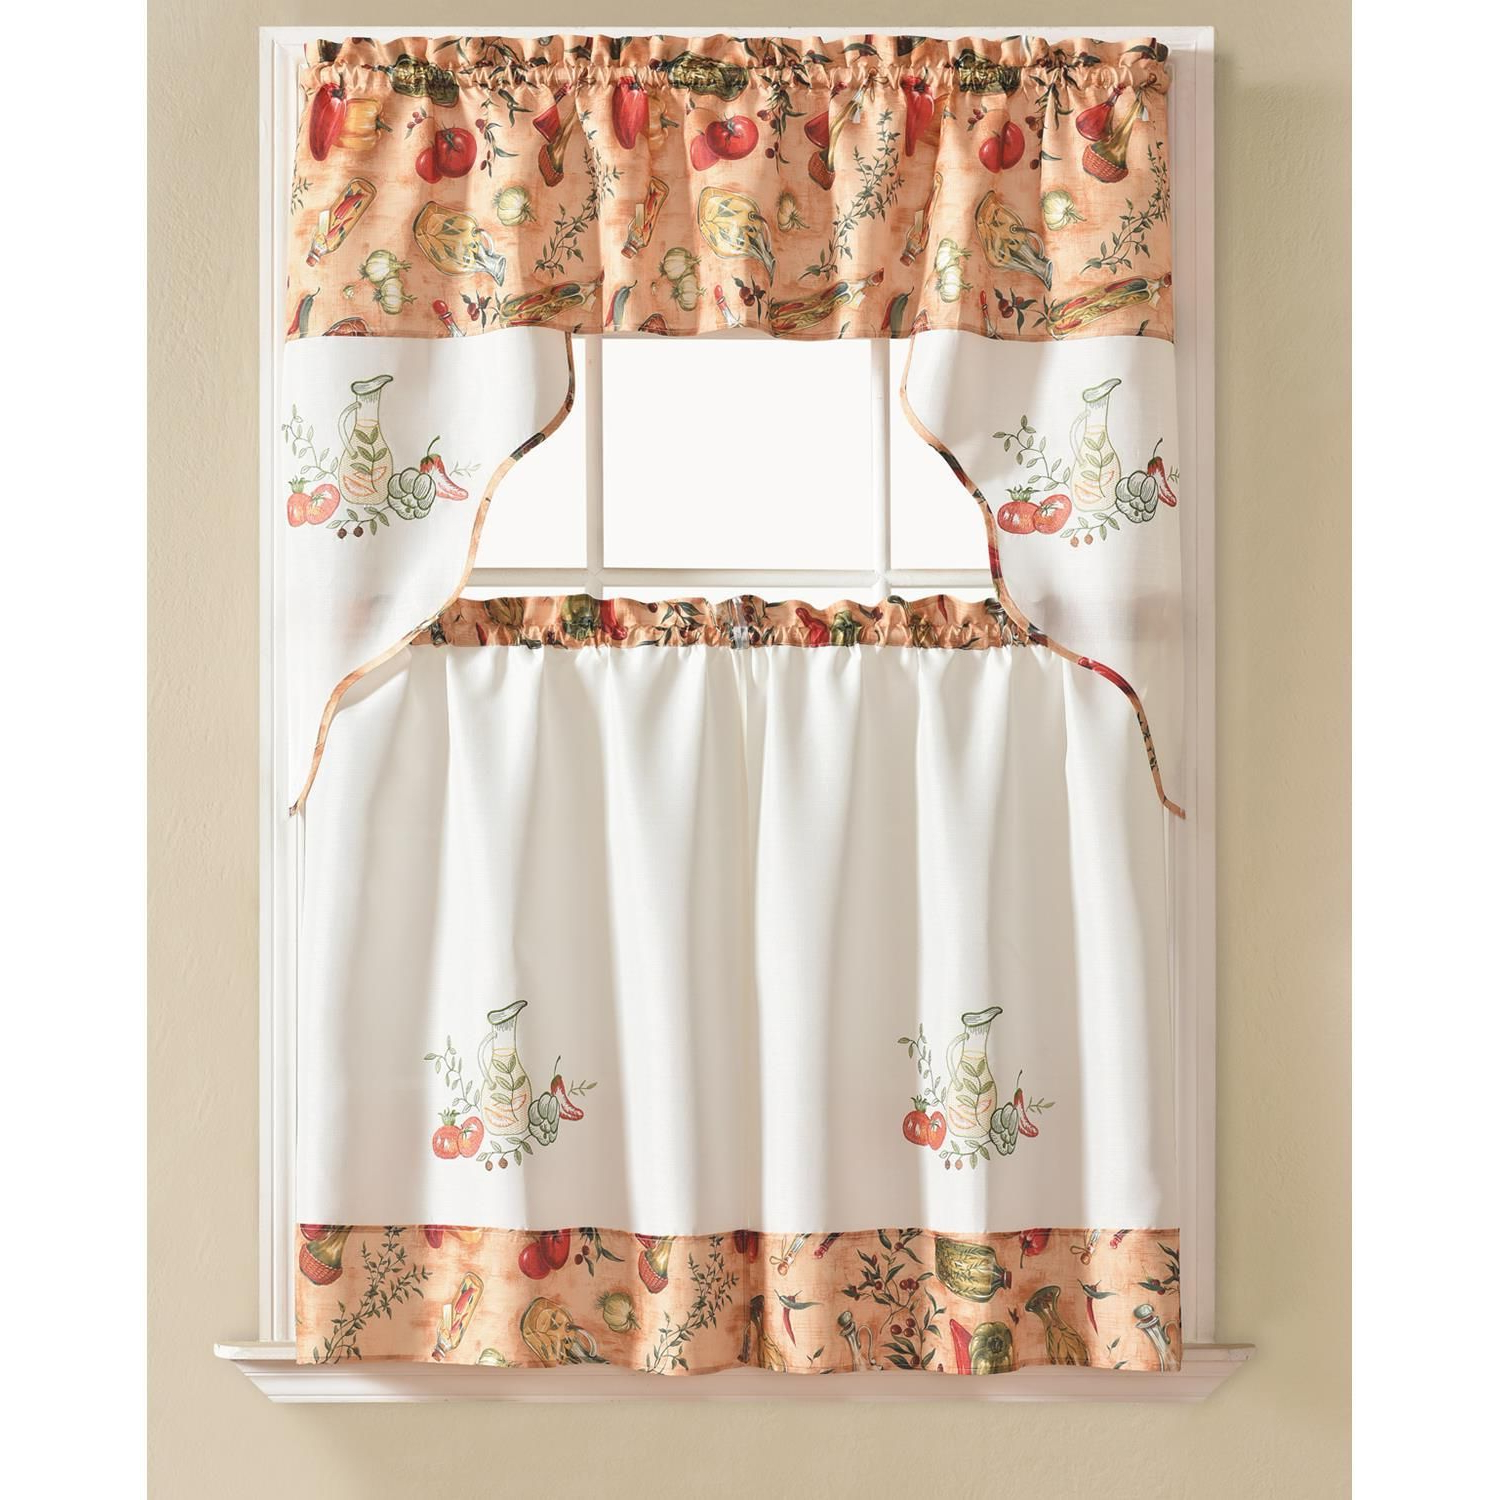 Most Recent Urban Embroidered Vegetable Tier And Valance Kitchen Curtain With Regard To Traditional Two Piece Tailored Tier And Valance Window Curtains (Gallery 10 of 20)